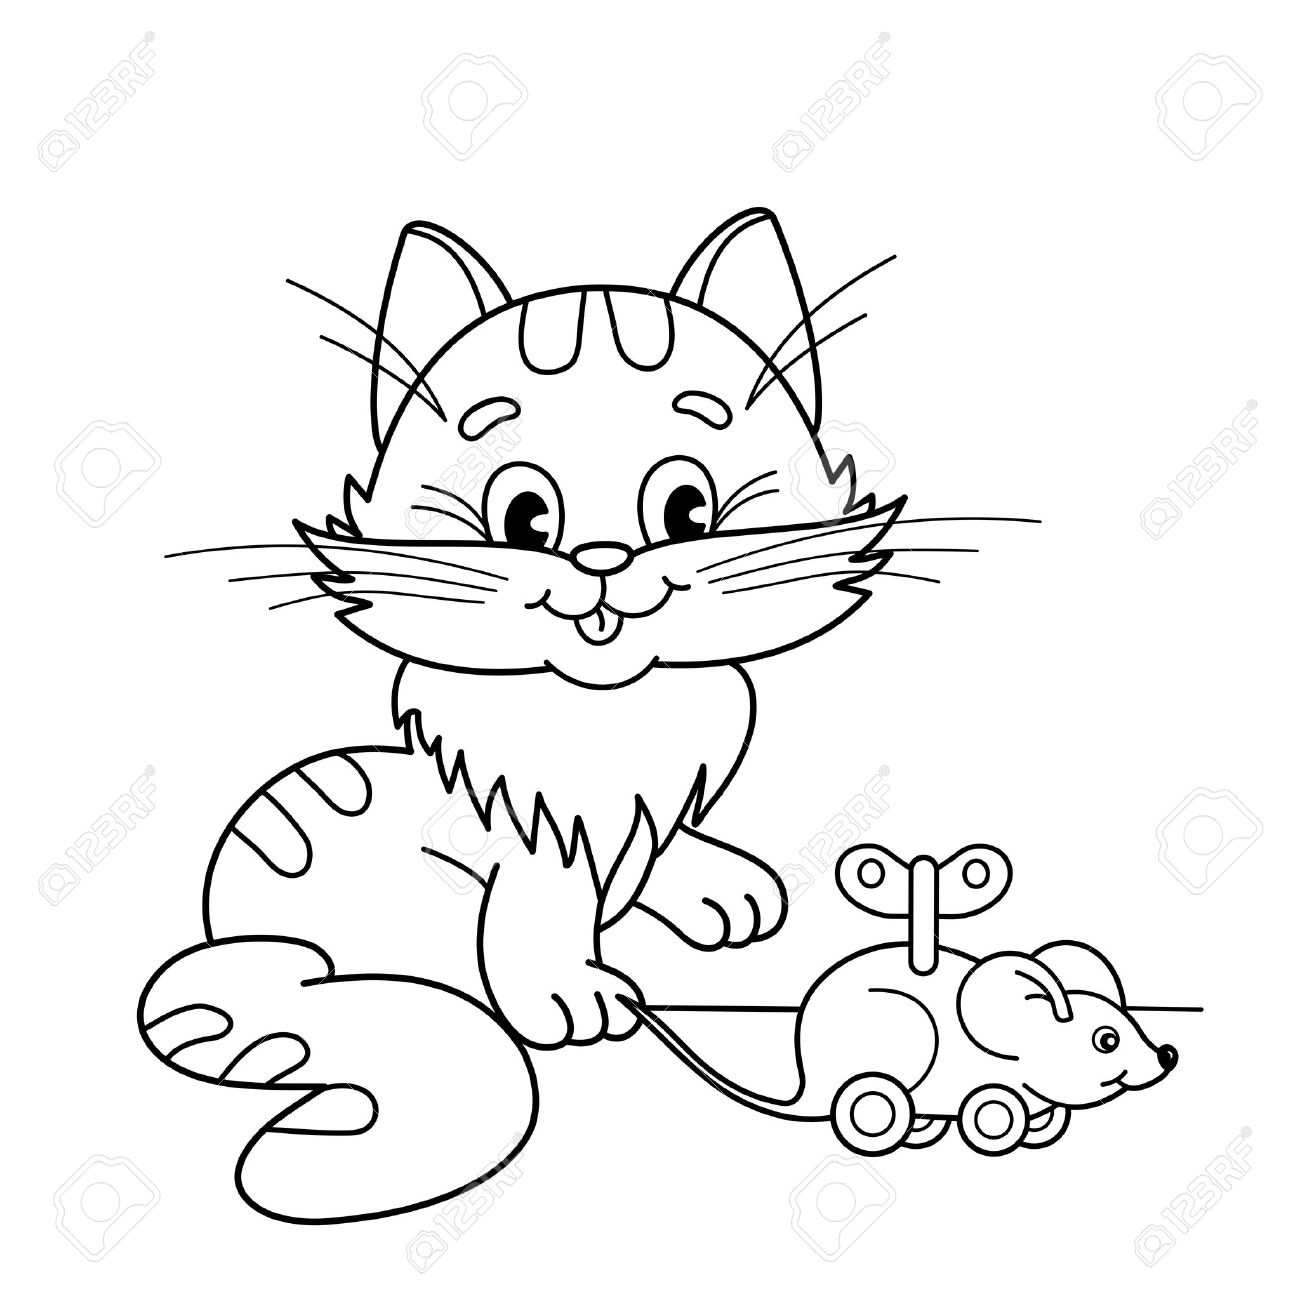 Coloring Page Outline Of Cartoon Cat With Toy Clockwork Mouse